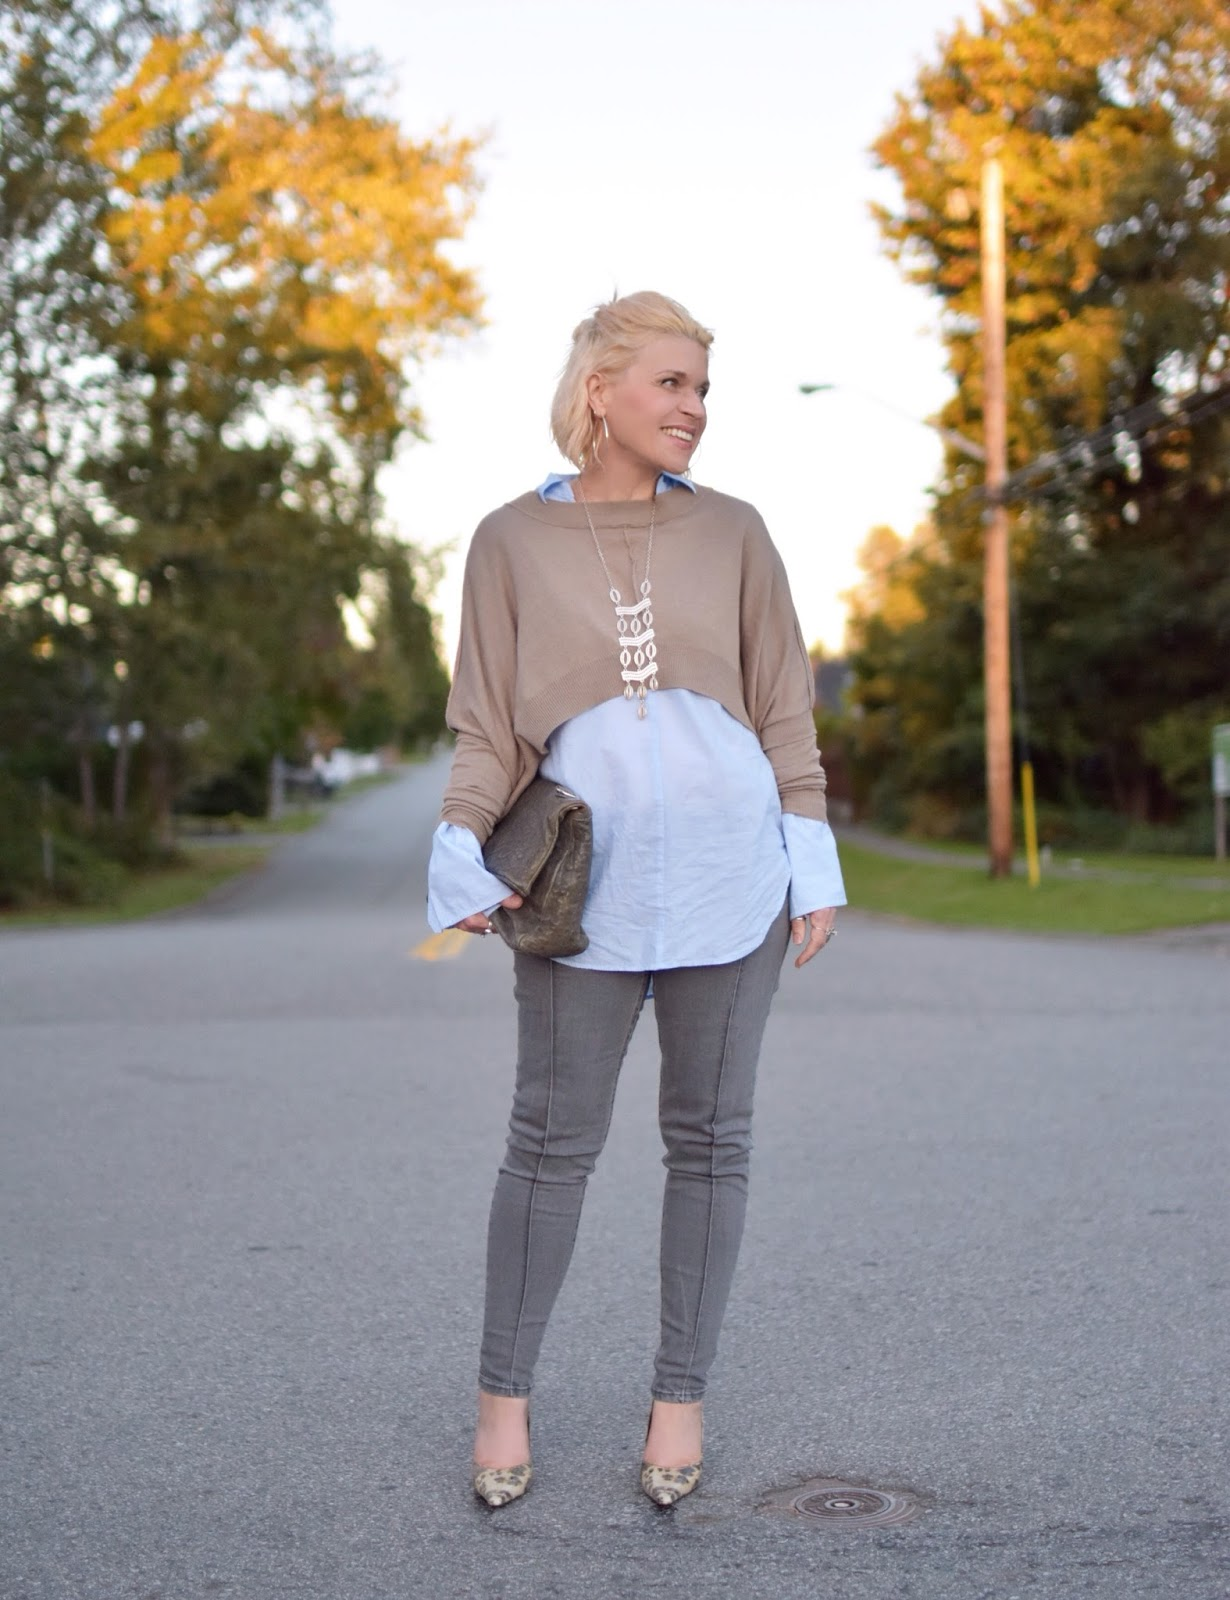 Monika Faulkner styles a drapey shrug with an oversize-cuffed shirt, grey skinny jeans, and reptile-patterned pumps